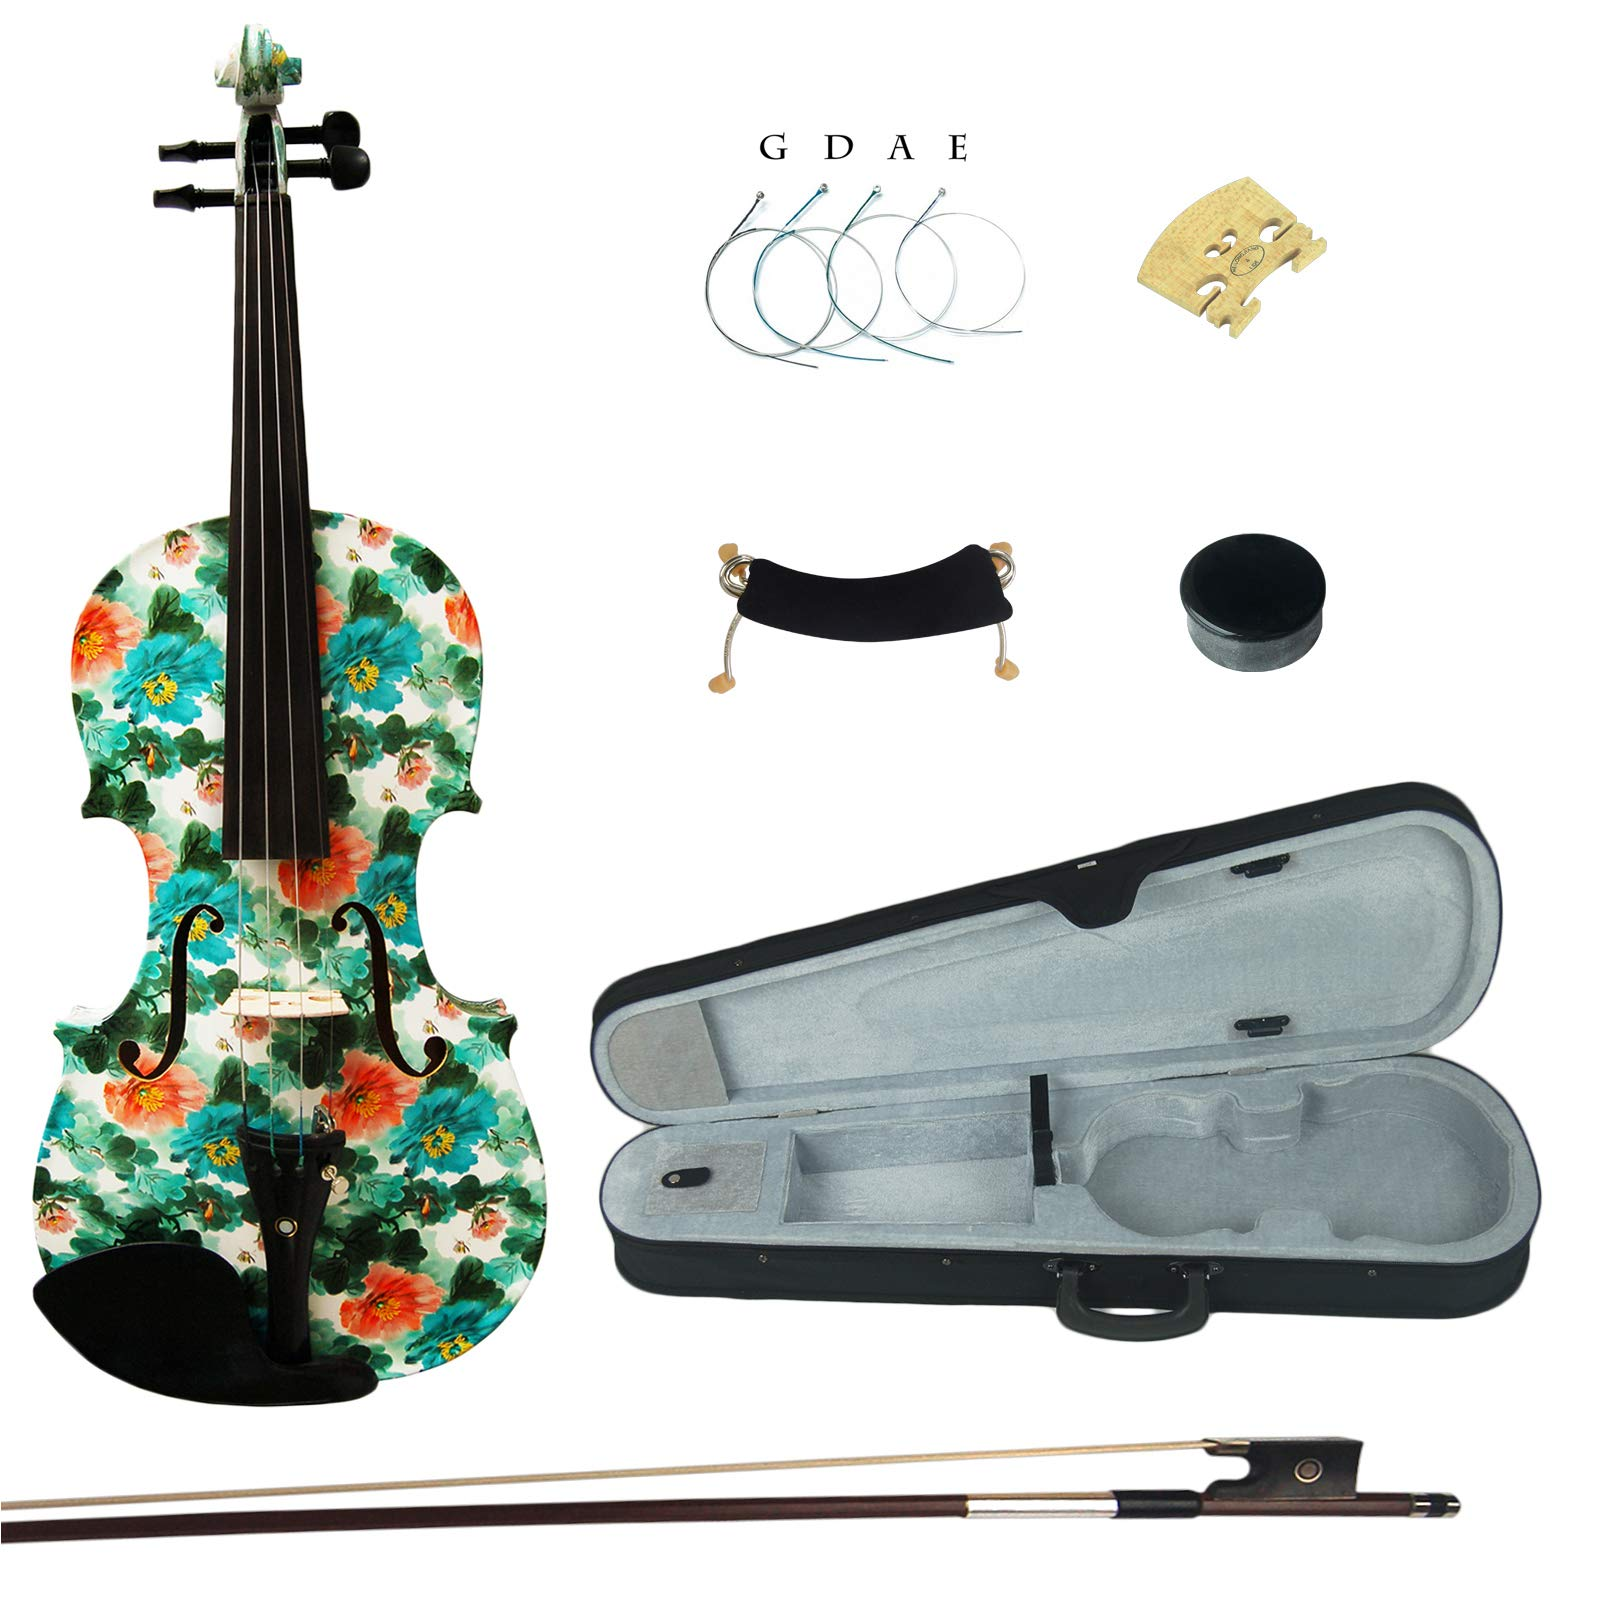 Kinglos 4/4 Blue Orange Flower Colored Ebony Fitted Solid Wood Violin Kit with Case, Shoulder Rest, Bow, Rosin, Extra Bridge and Strings Full Size (YZ1206)